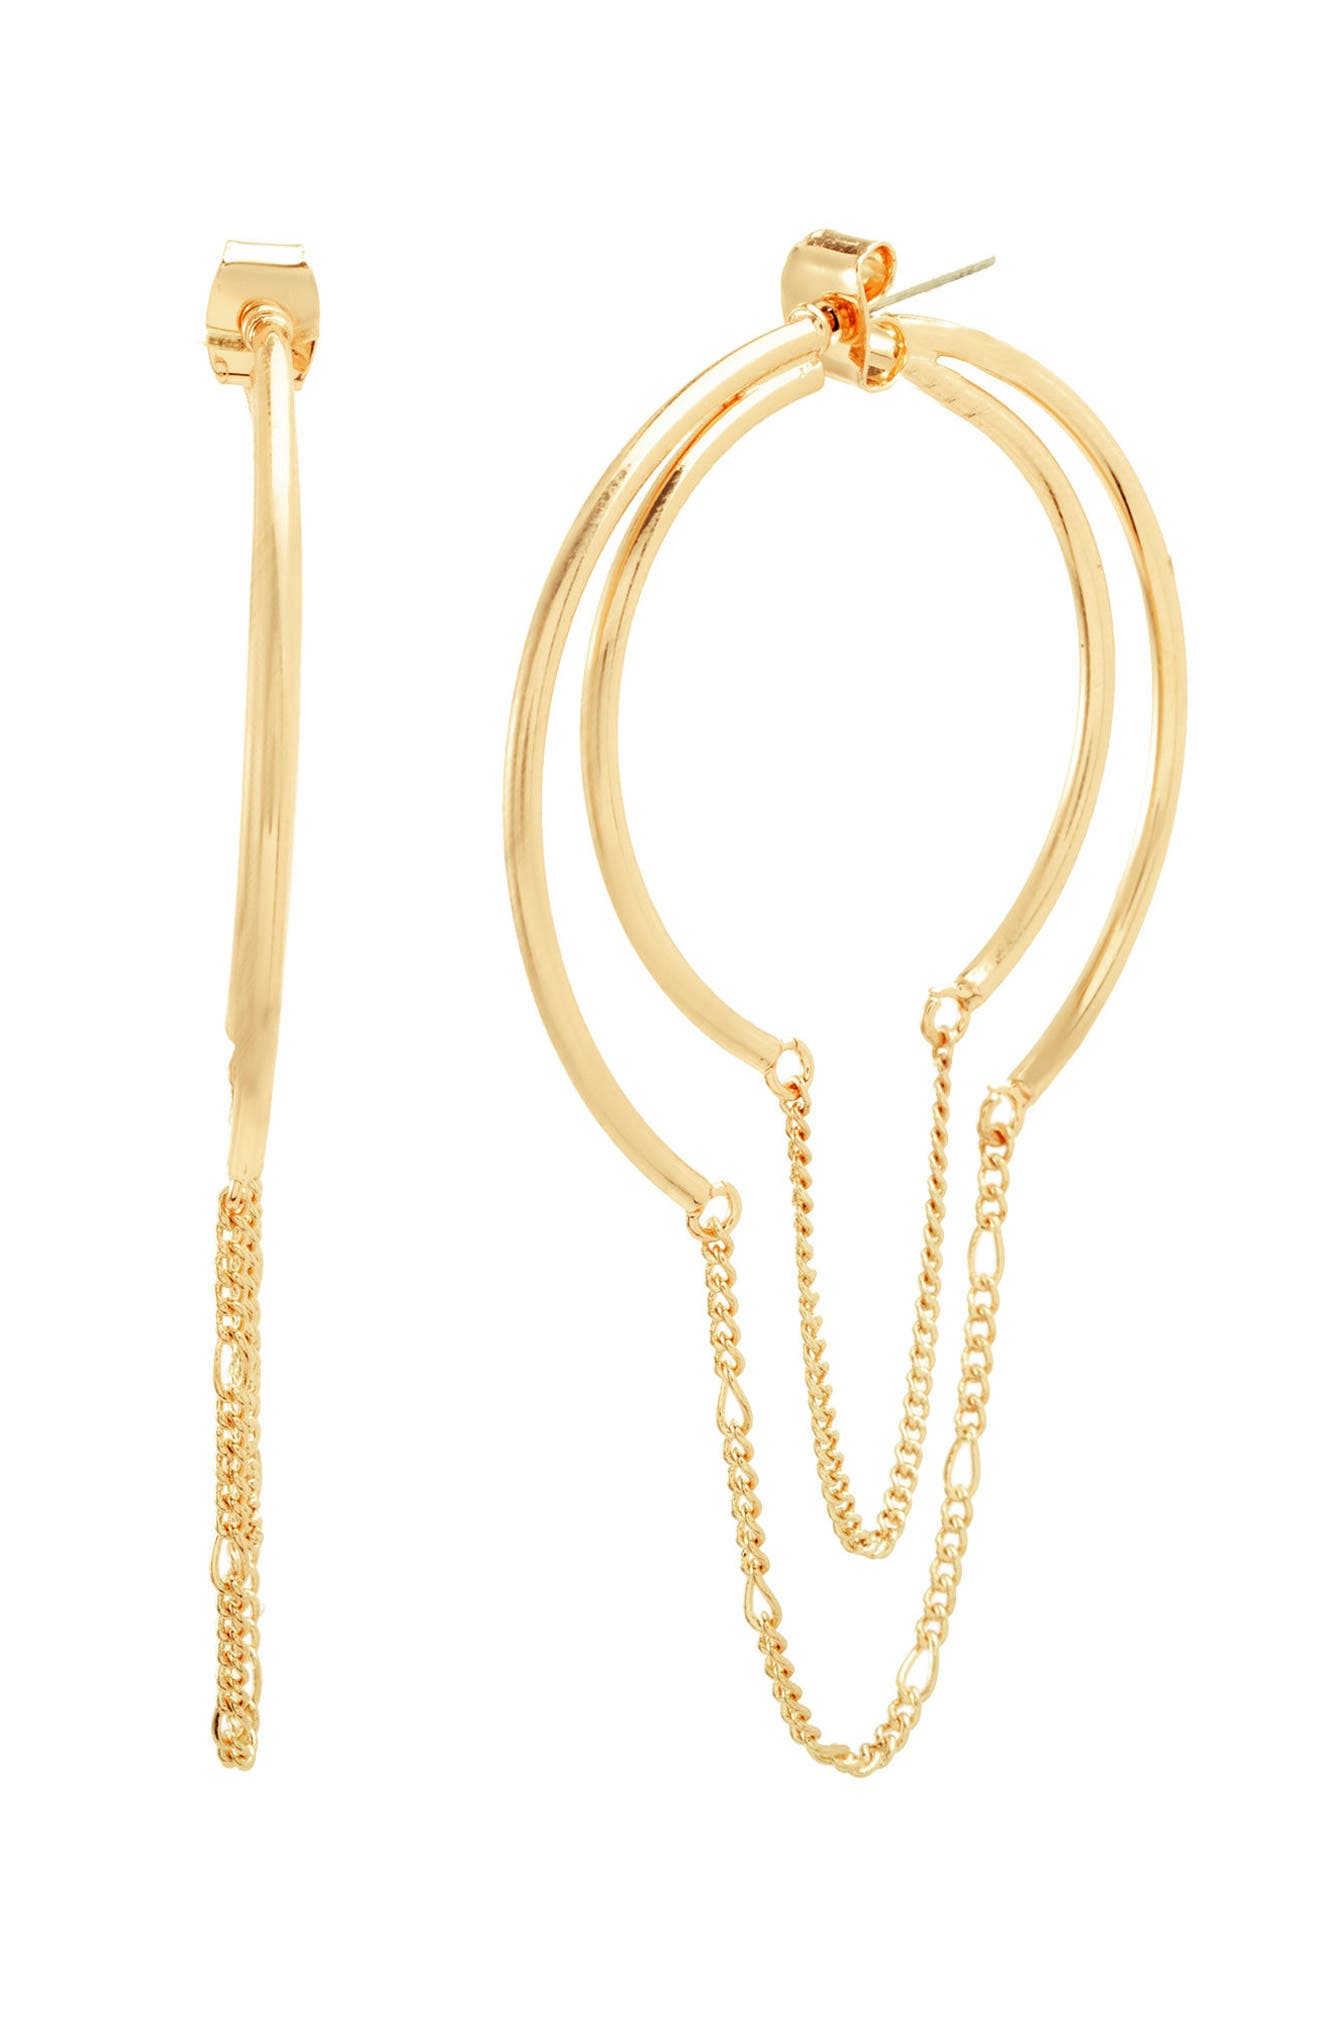 Steve Madden Chain Hoop Earrings